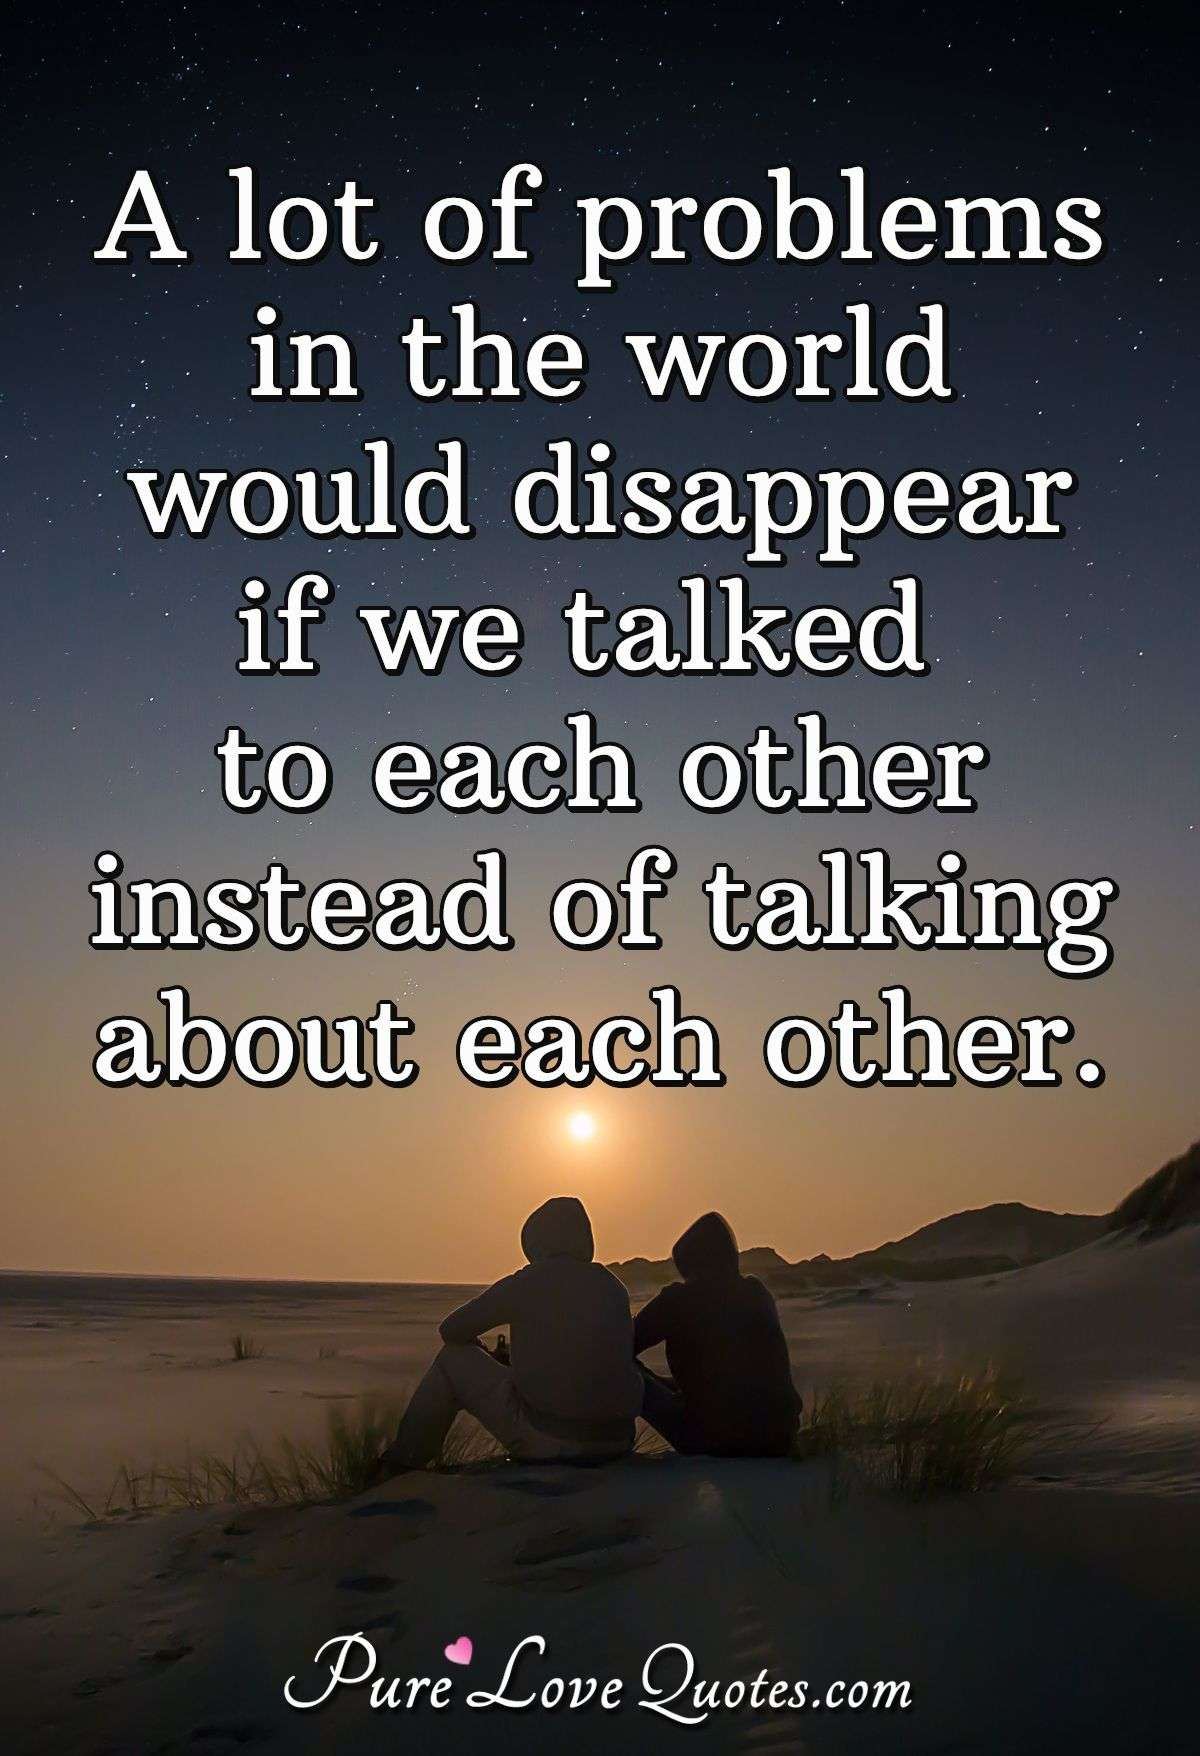 A lot of problems in the world would disappear if we talked to each other instead of talking about each other. - Anonymous